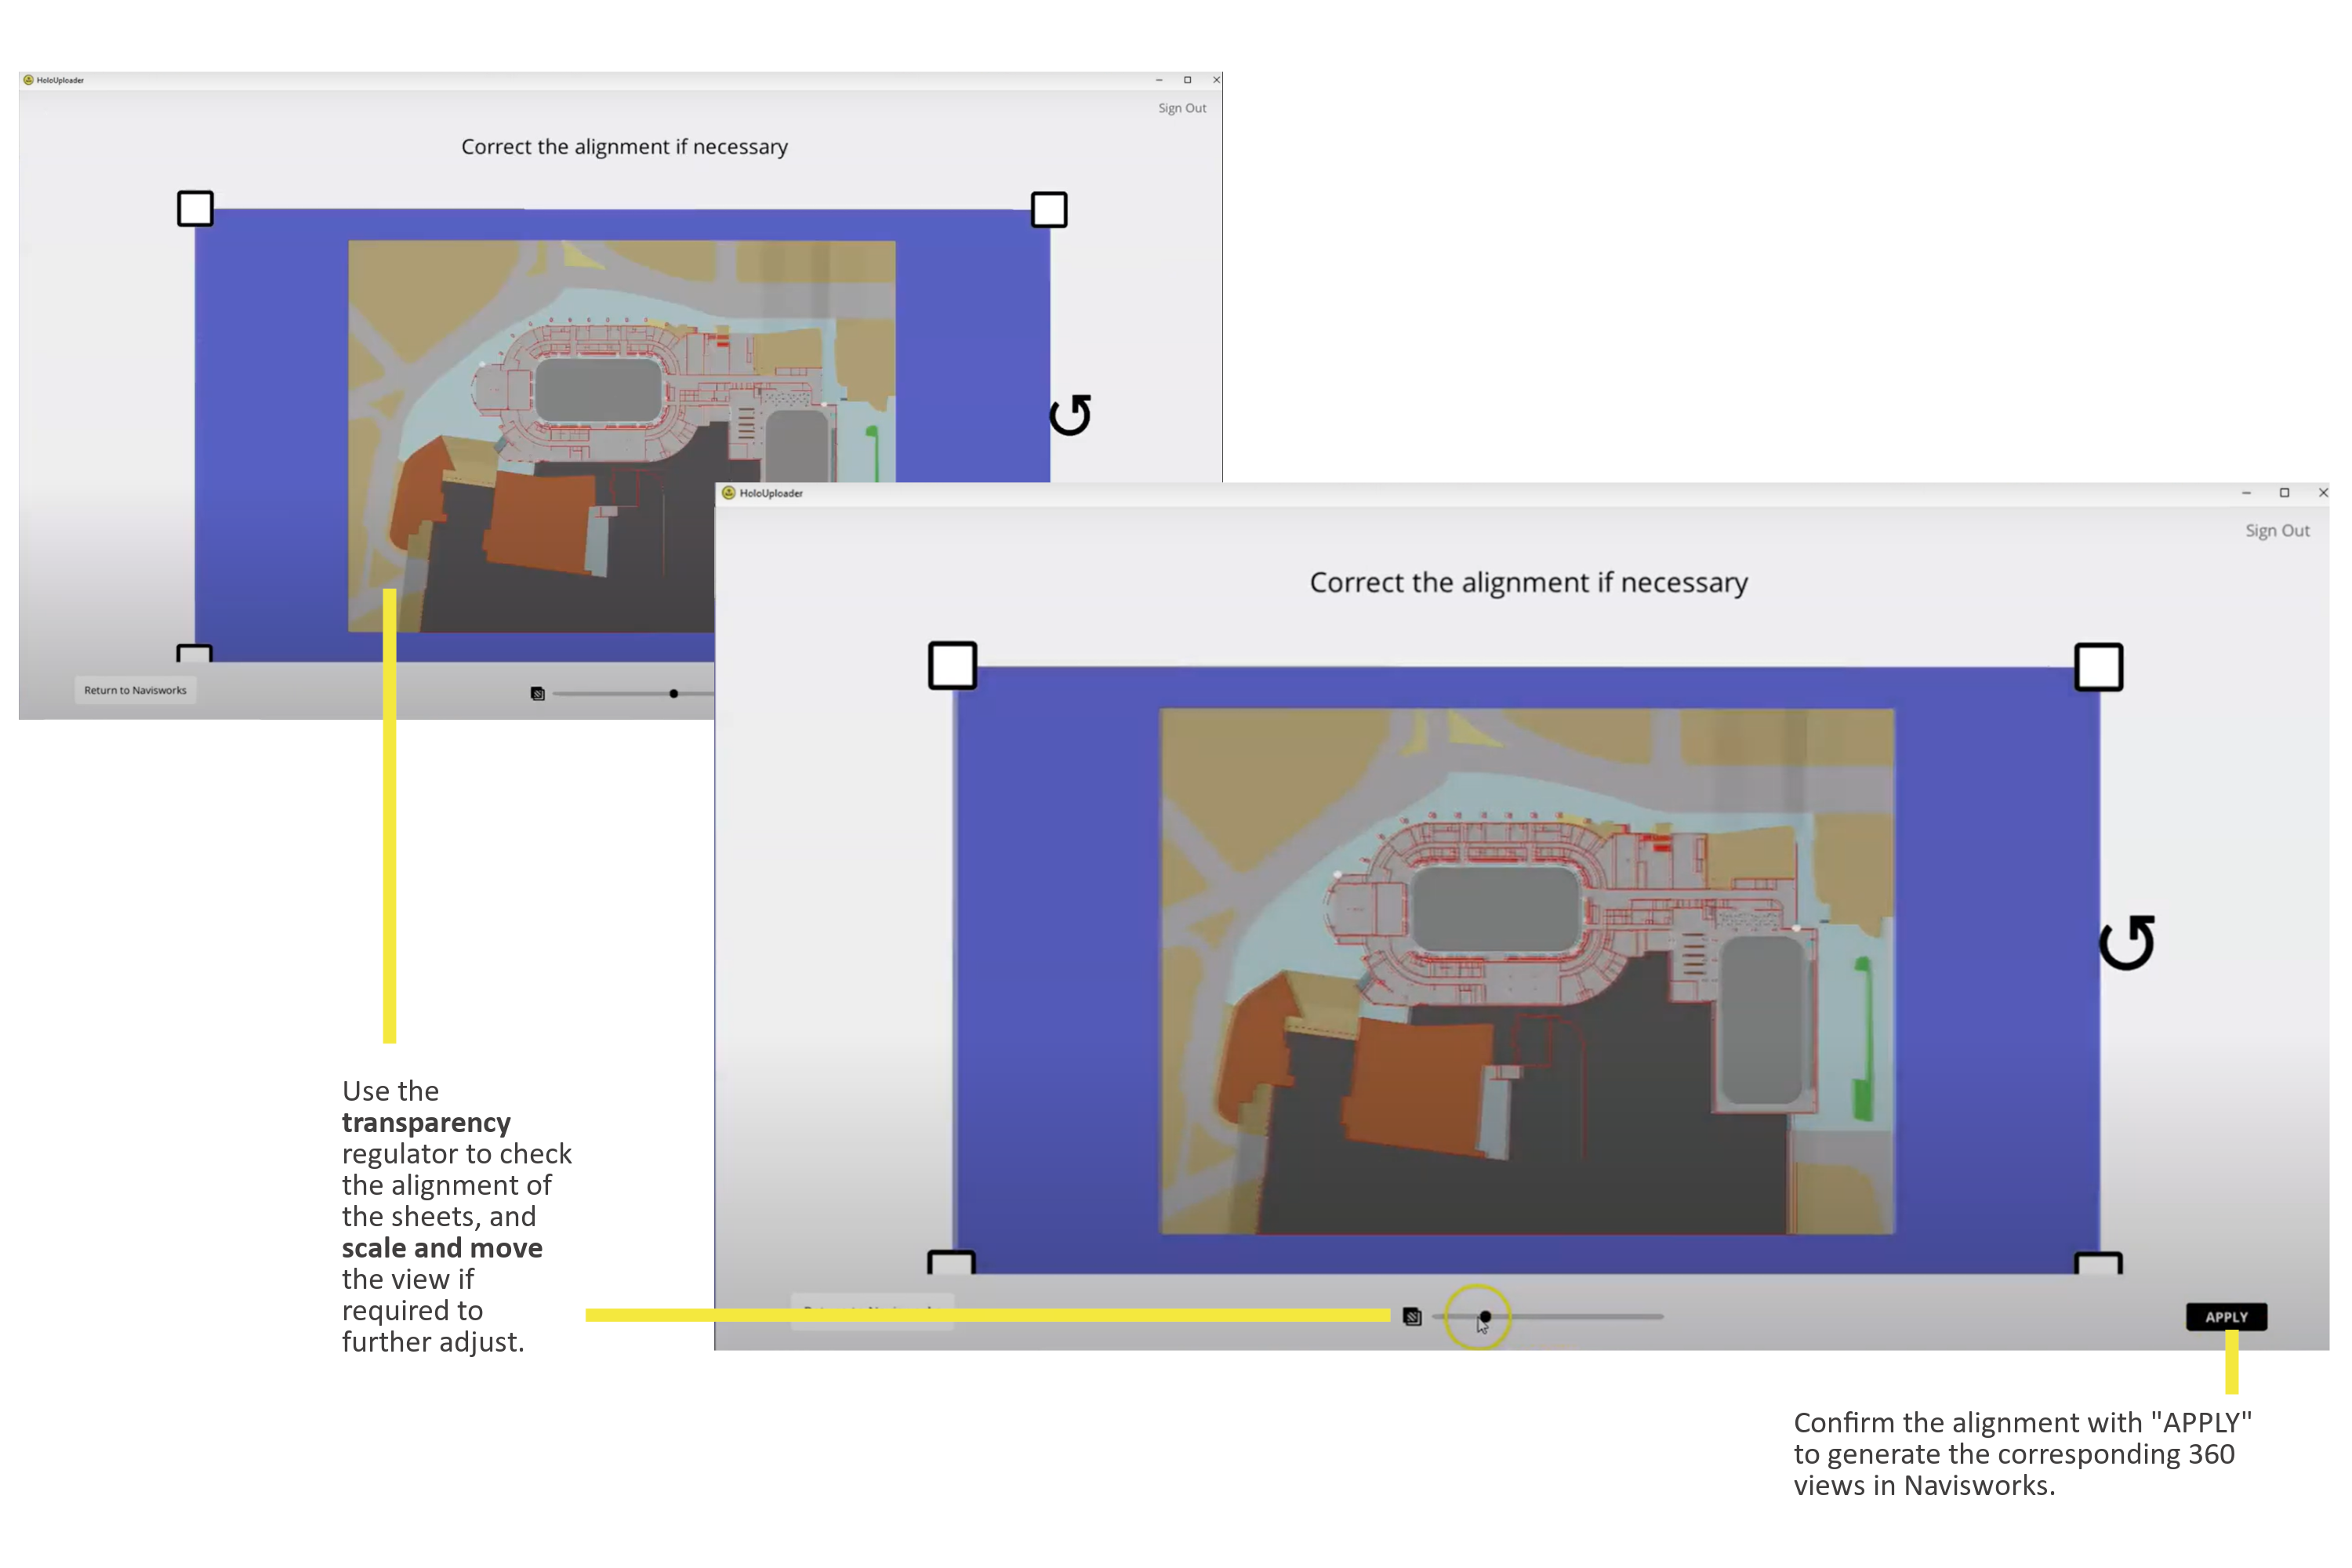 Comfirm the alignment of the Navisworks sheet with the selected HoloBuilder sheet